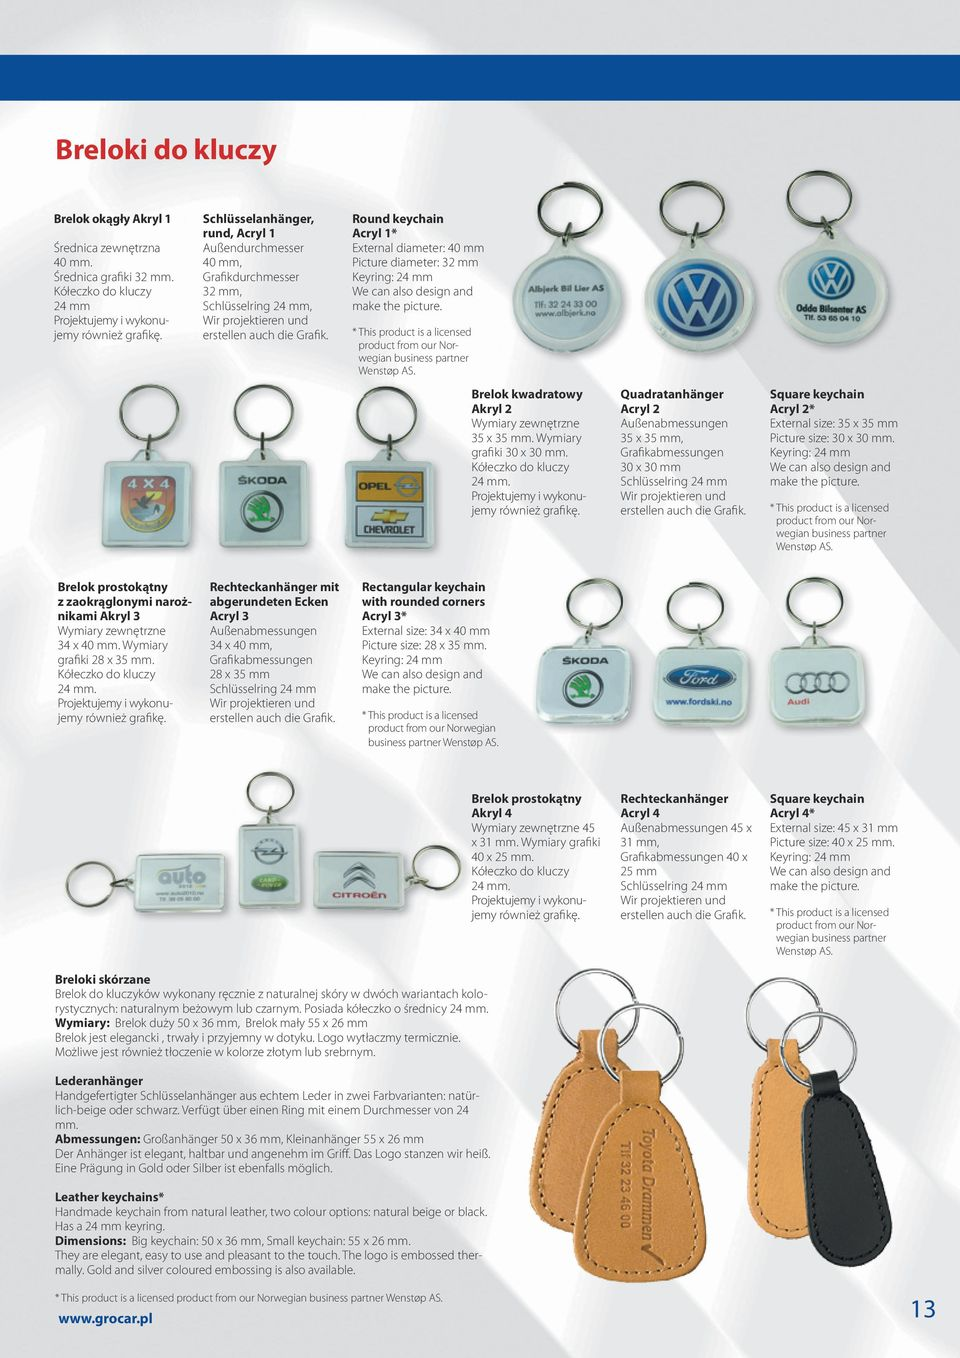 Round keychain Acryl 1* External diameter: 40 mm Picture diameter: 32 mm Keyring: 24 mm We can also design and make the picture.